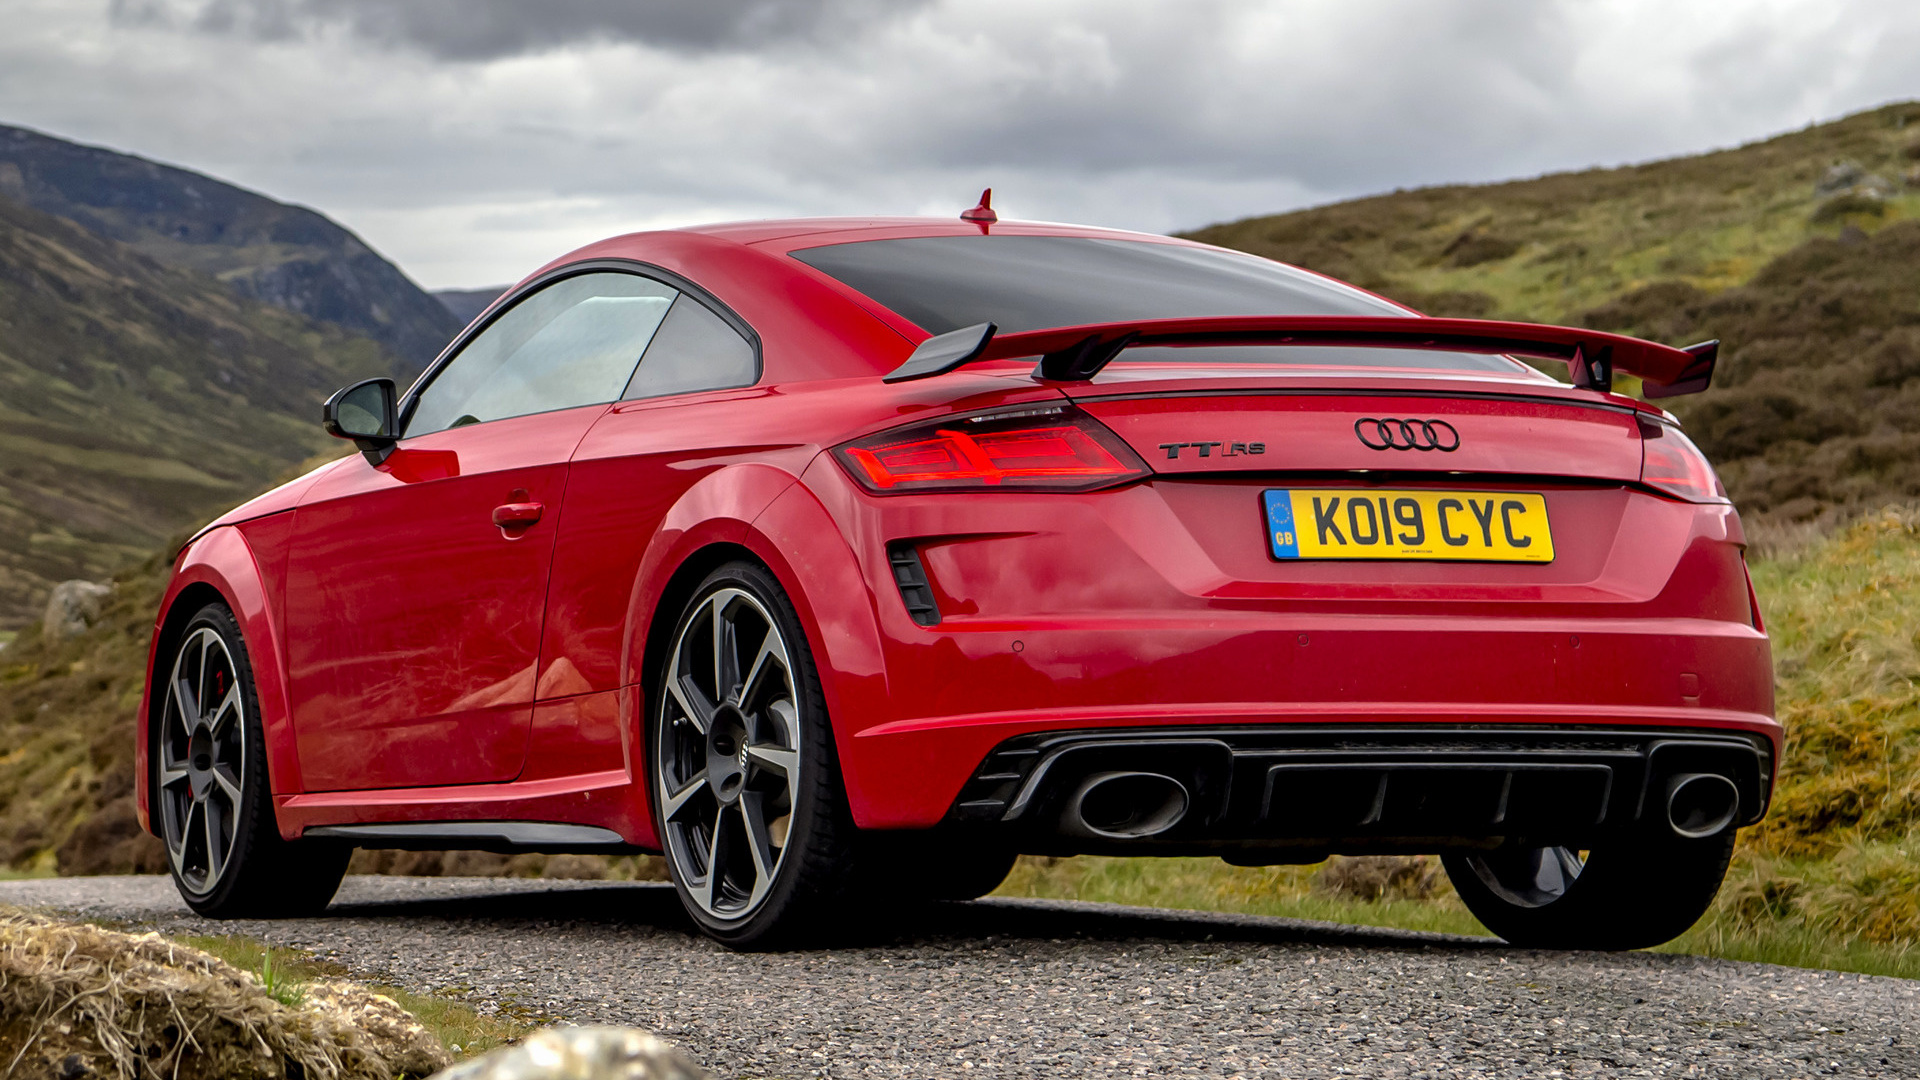 2019 Audi TT RS Coupe Audi Sport Edition (UK) - Sfondi e ...